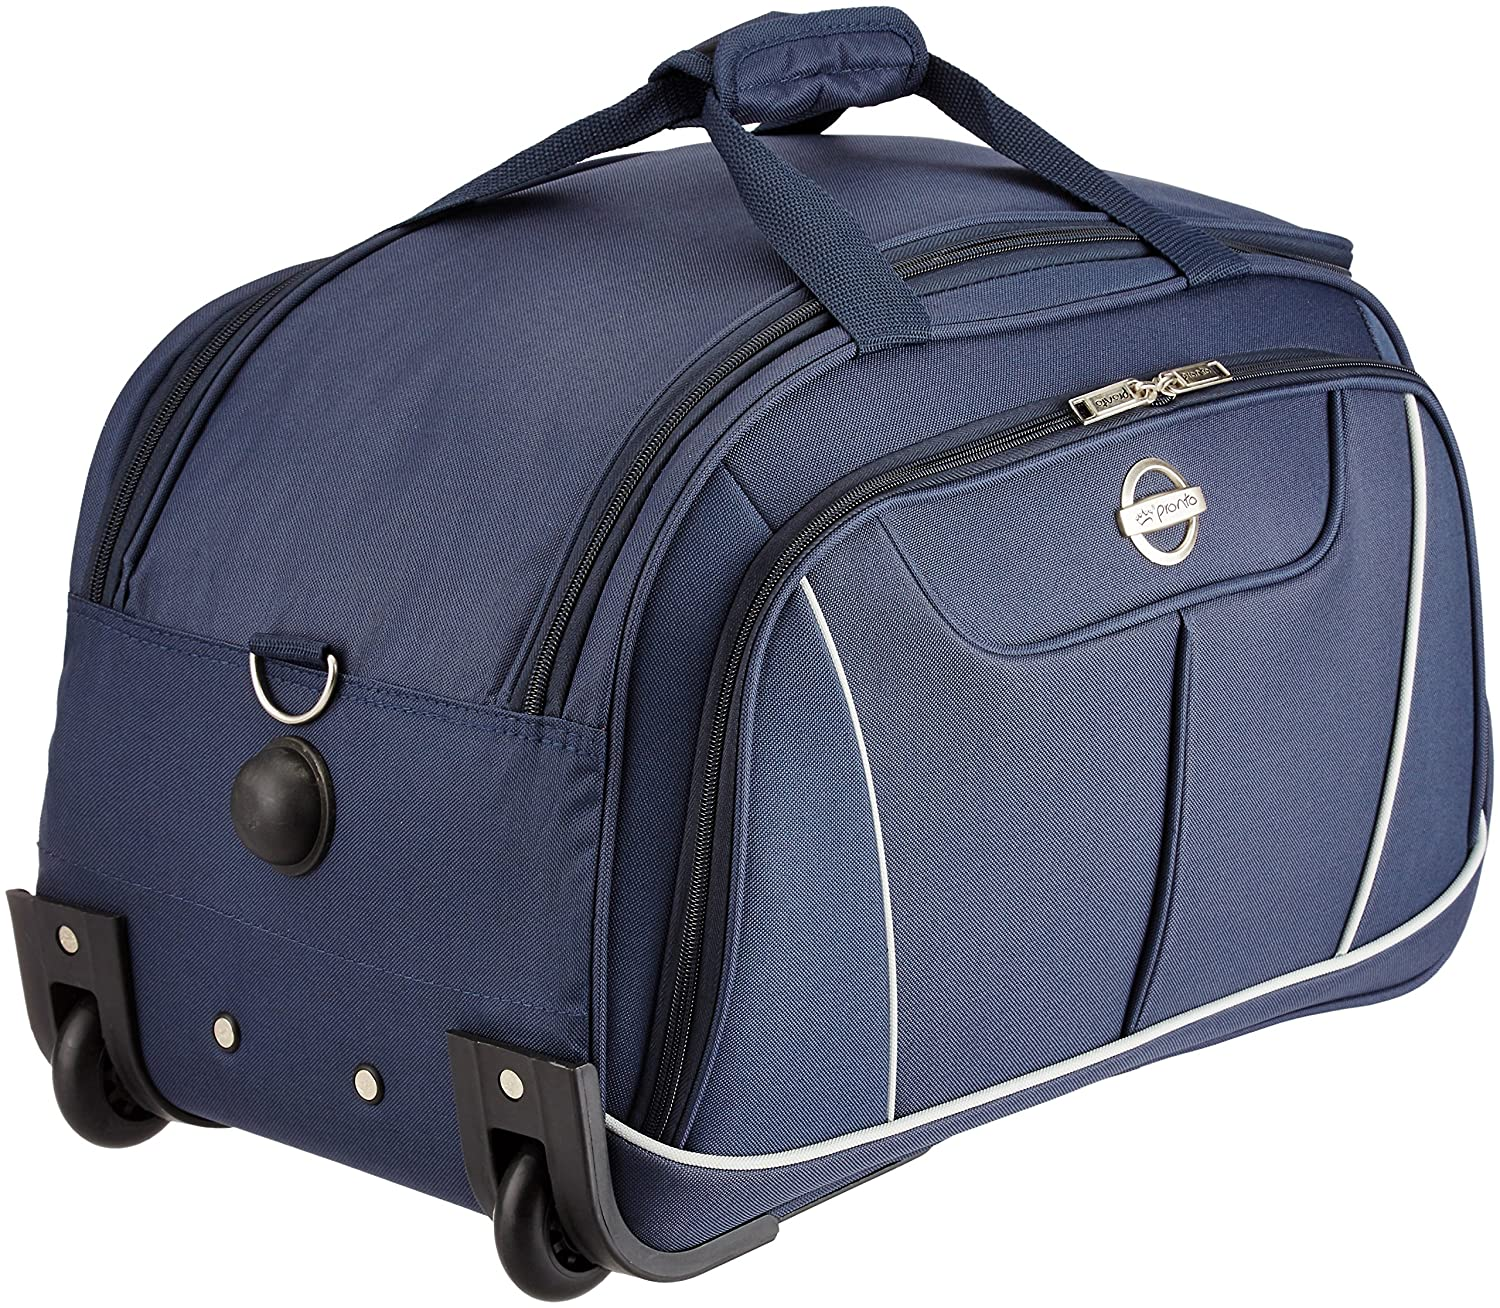 0ccae28c83 Pronto Miami Polyester 55 cms Navy Blue Travel Duffle (6572 - BL)   Amazon.in  Bags